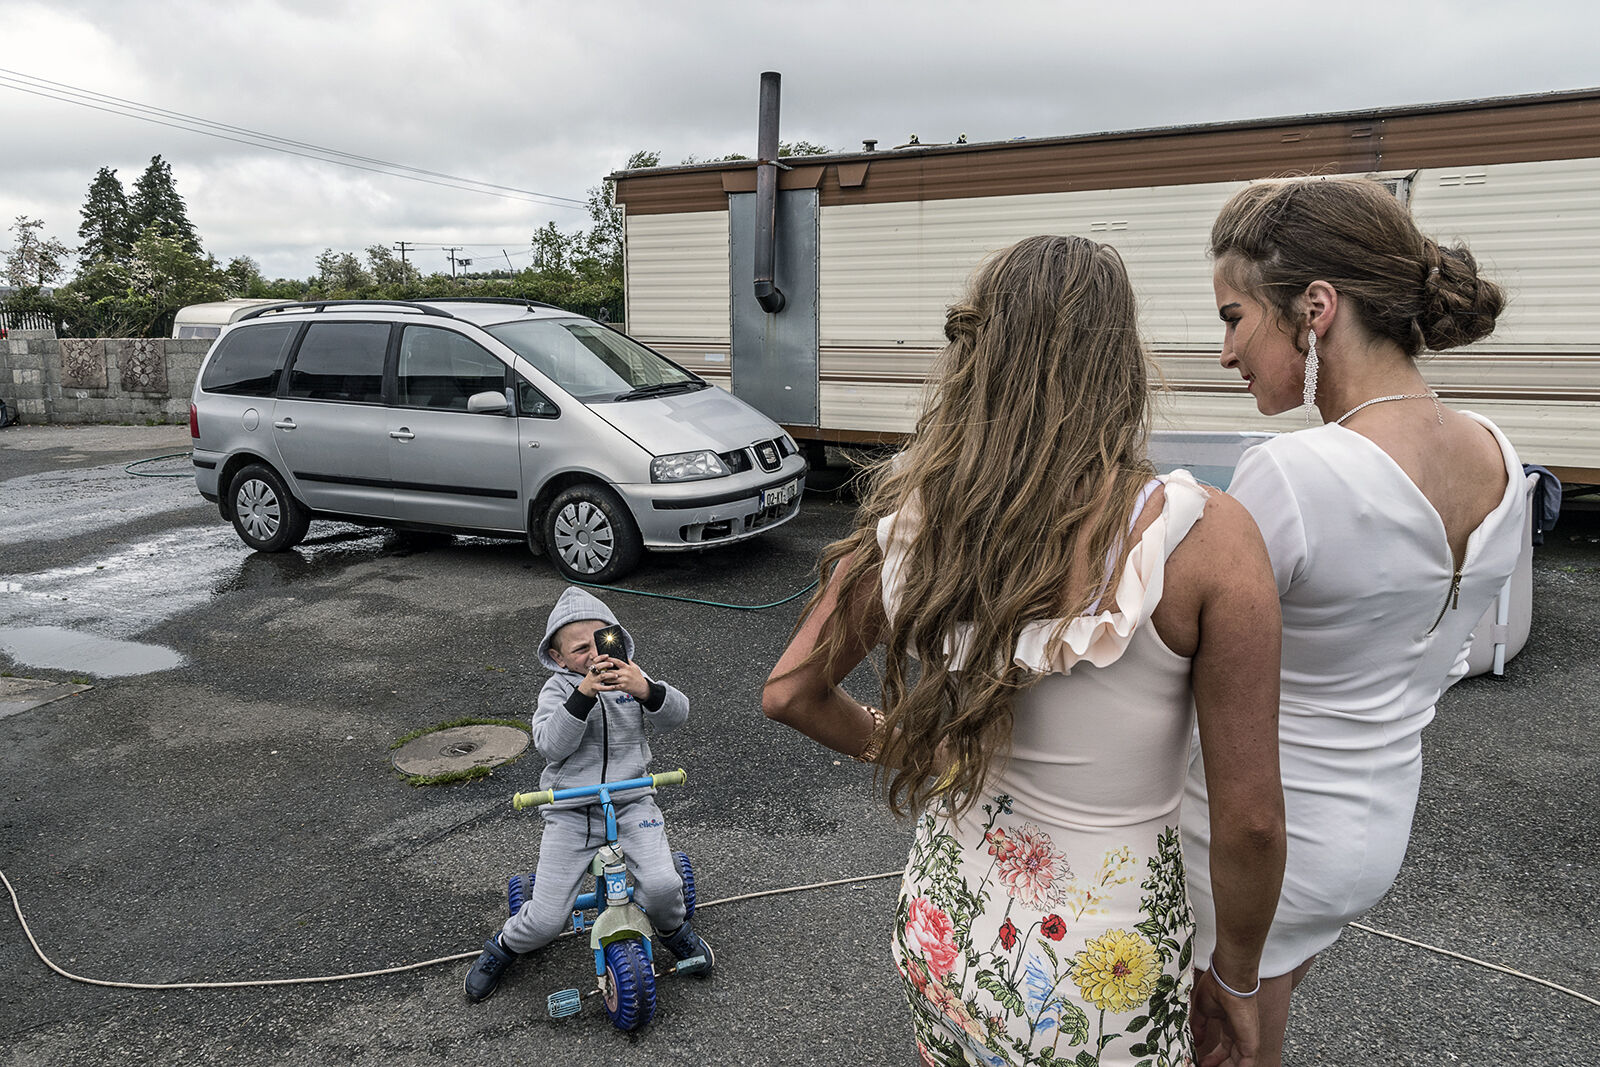 Kevin takes pictures of his sisters, Reilly Siblings, Tipperary, Ireland 2019